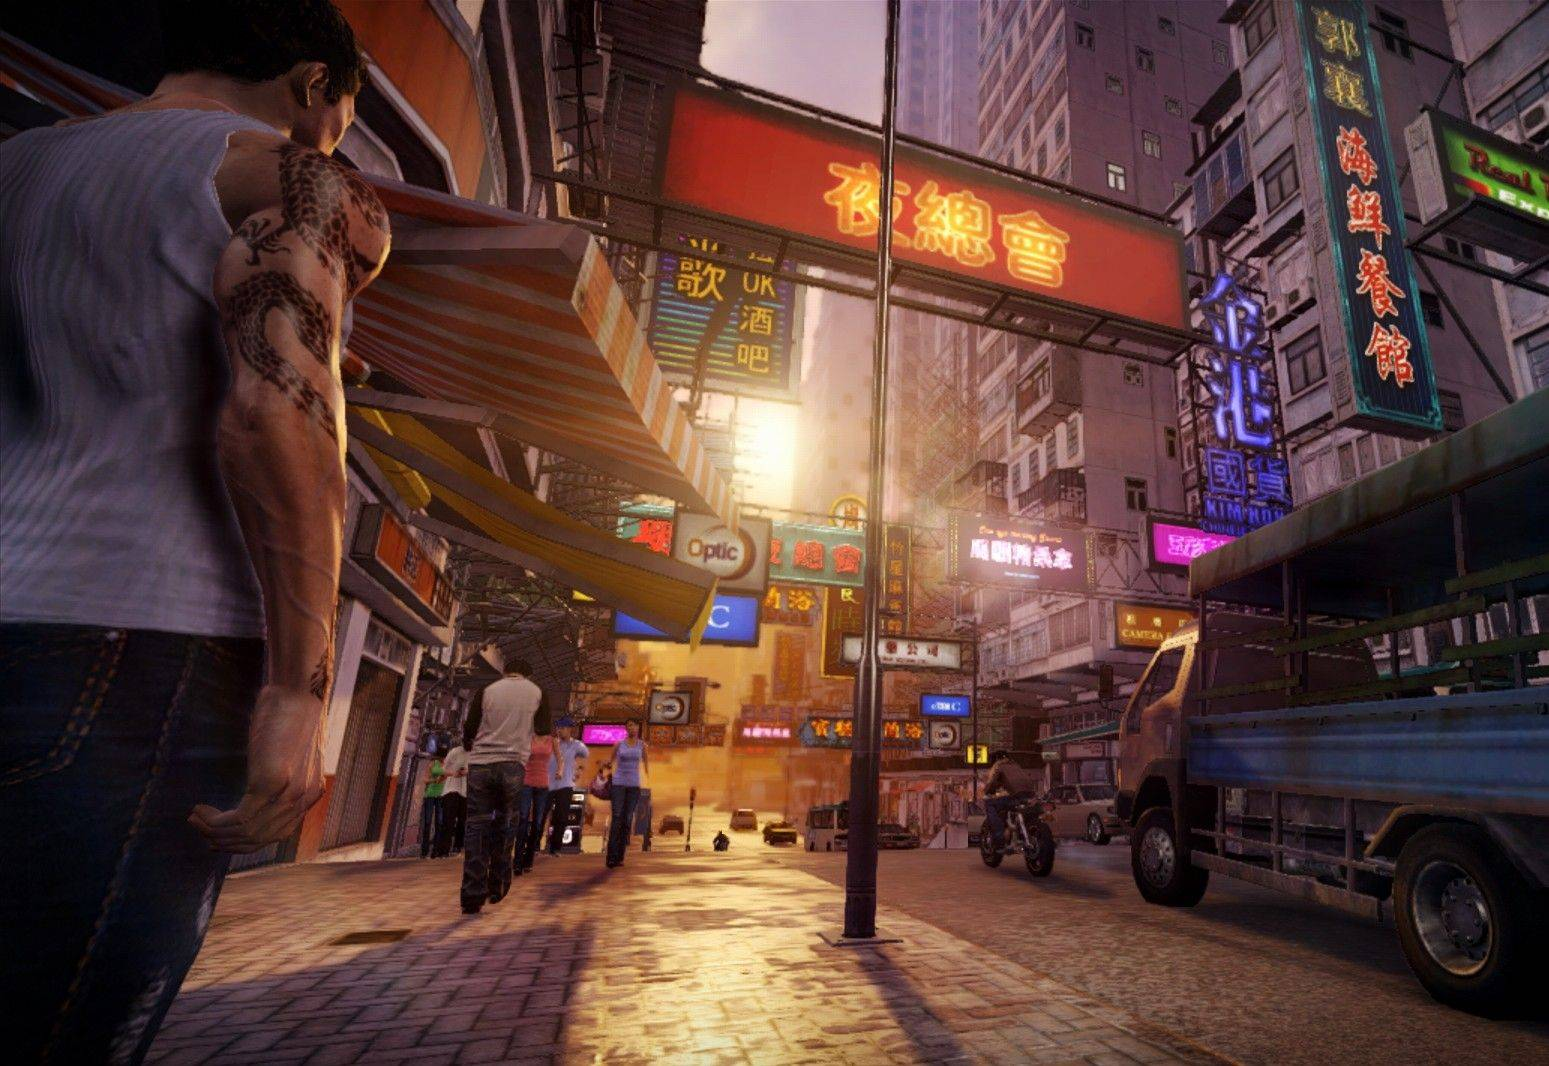 """Sleeping Dogs"" offers lots of action and an engrossing story line set in Hong Kong."